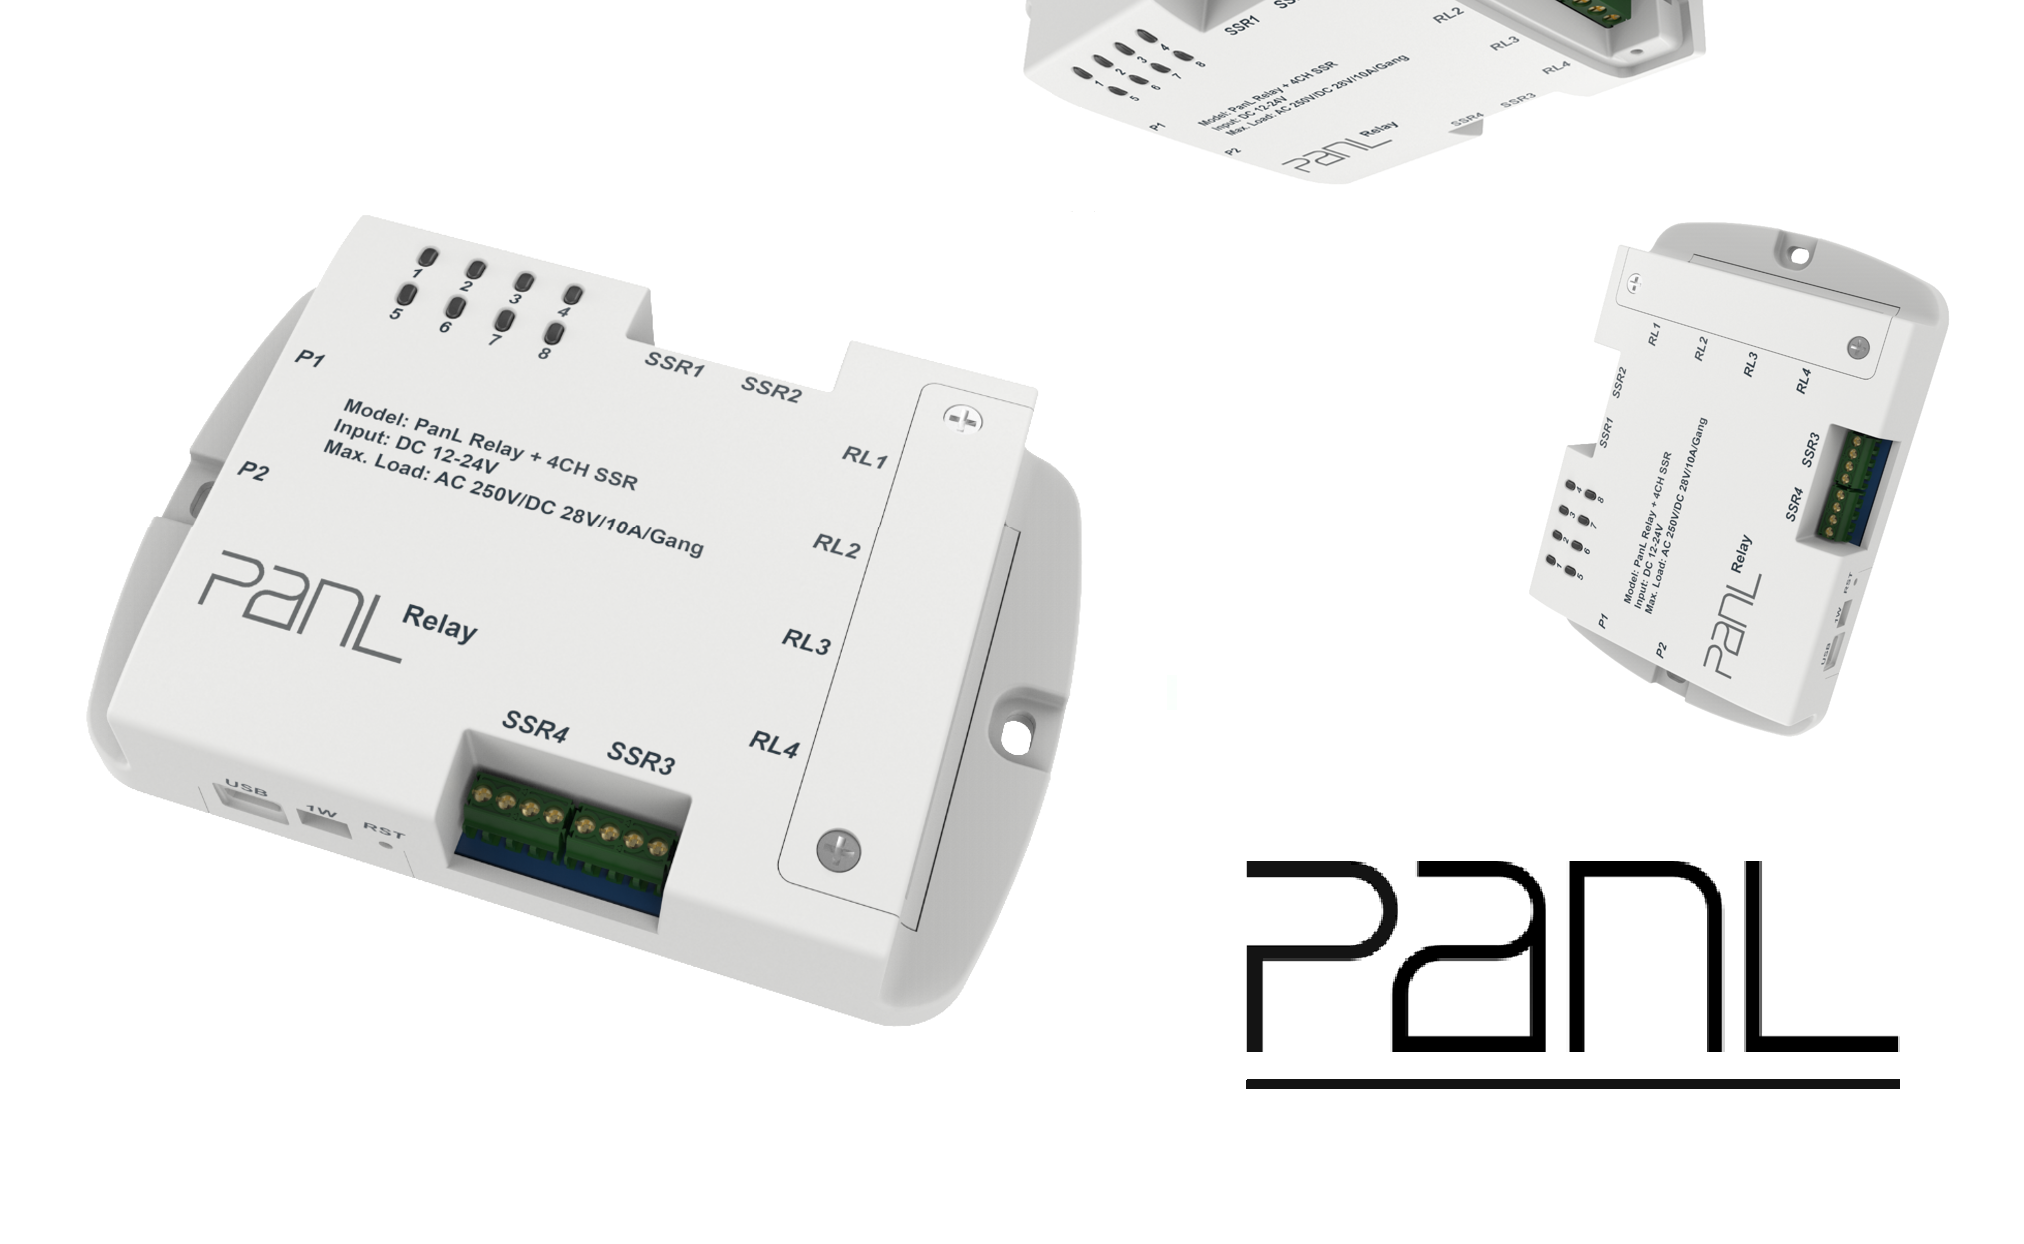 Bridgetek Introduces New PanL Hardware for the Controlling of Smart Devices